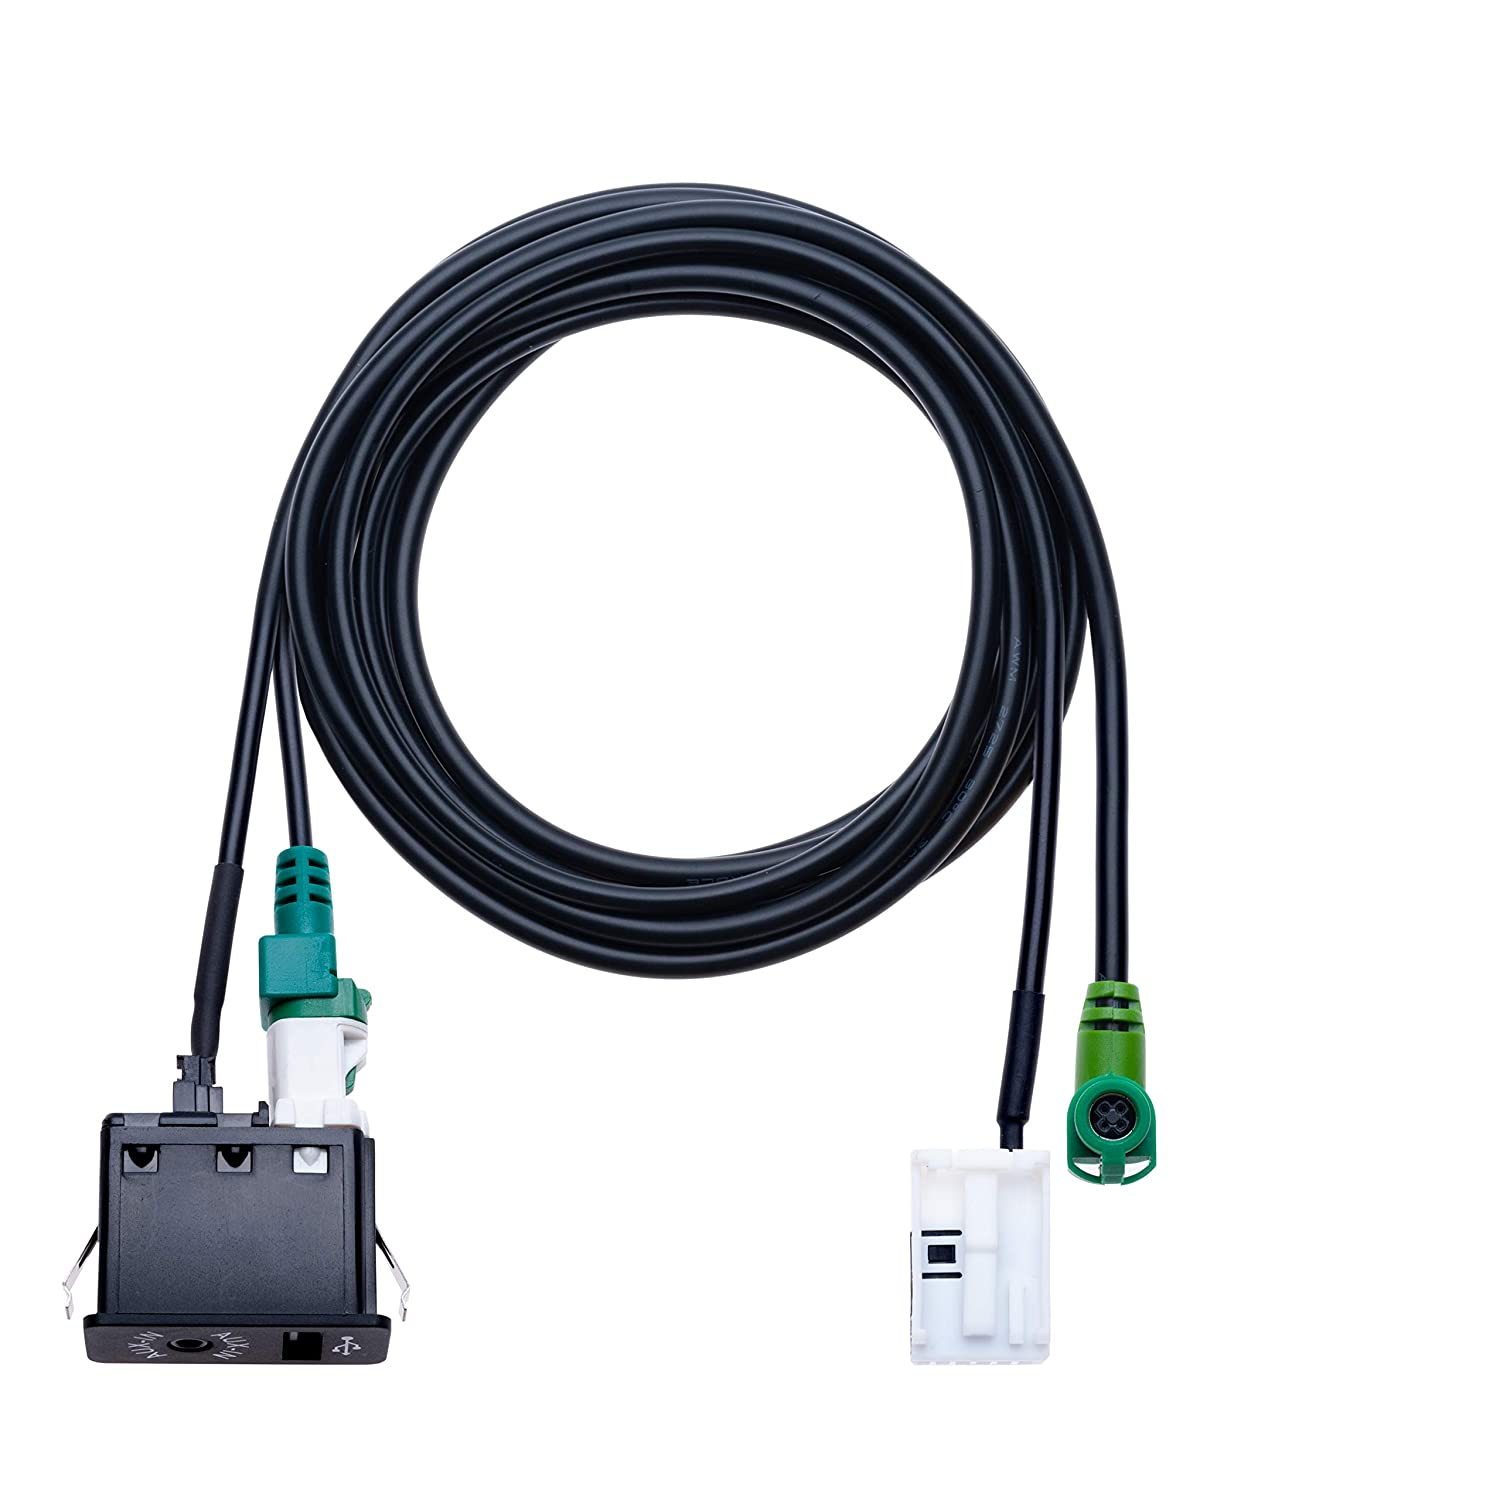 Compatible with BMW 1 3 5 6 E81 E82 E87 E88 E90 E91 E92 E93 E60 E61 F07 F10 F11 E63 E64 F06 F12 F13 Vehicle Radio USB 4 pin Connecting Wire AUX 12 pin Harness Cable USB AUX Car Switch 4.9 ft